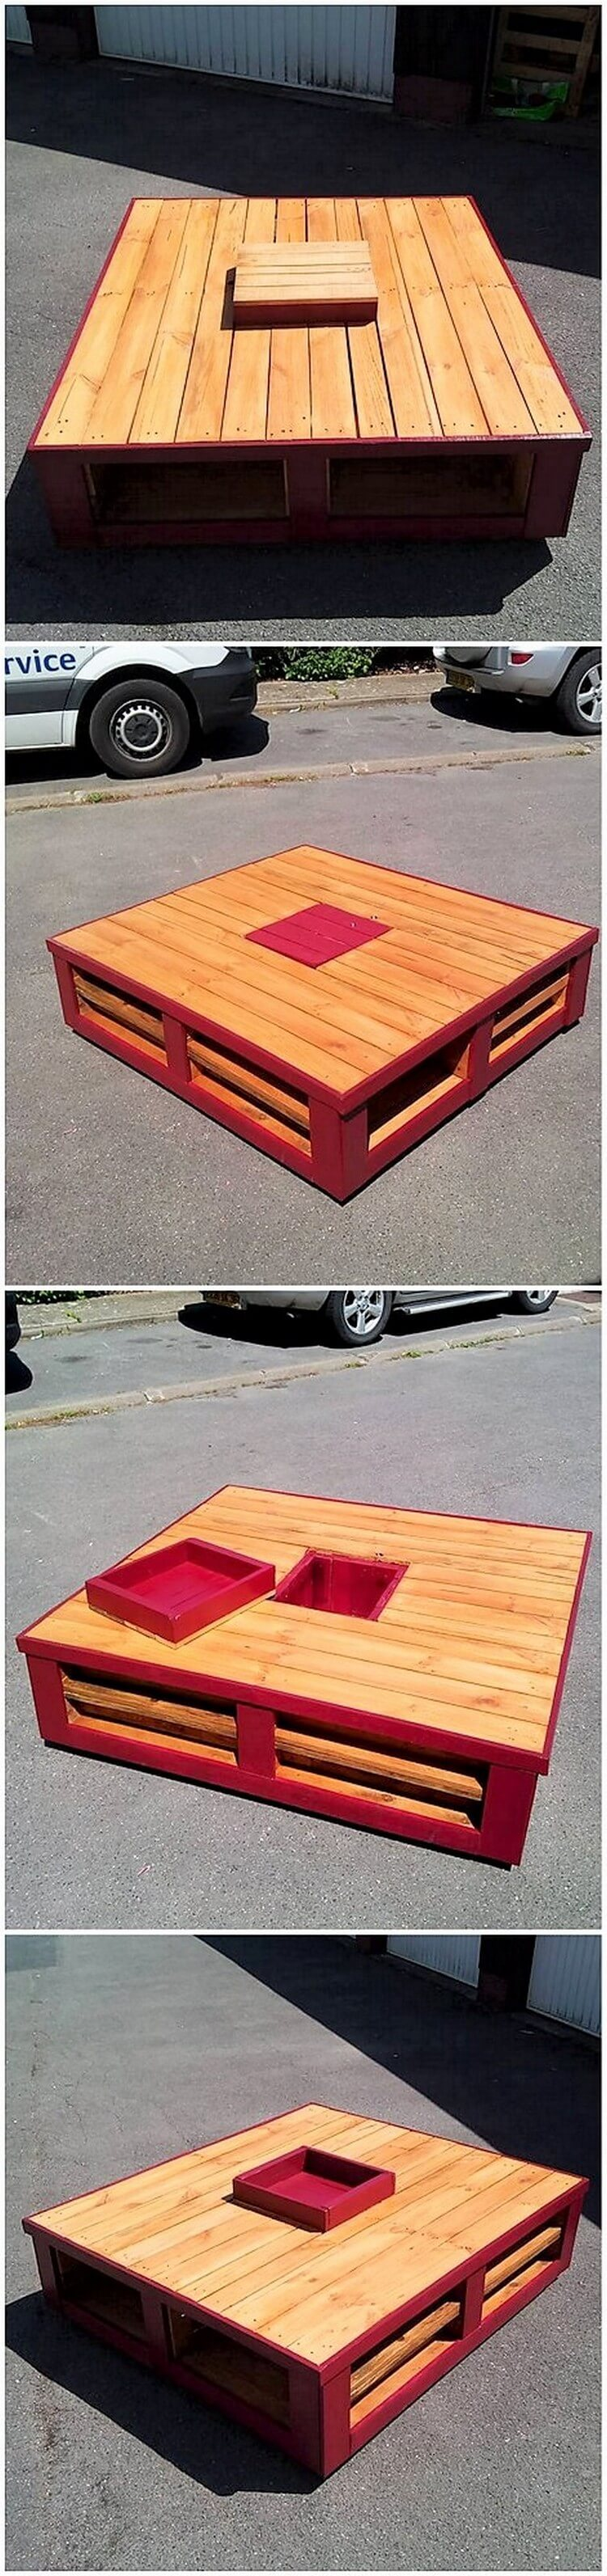 Pallet Table with Storage